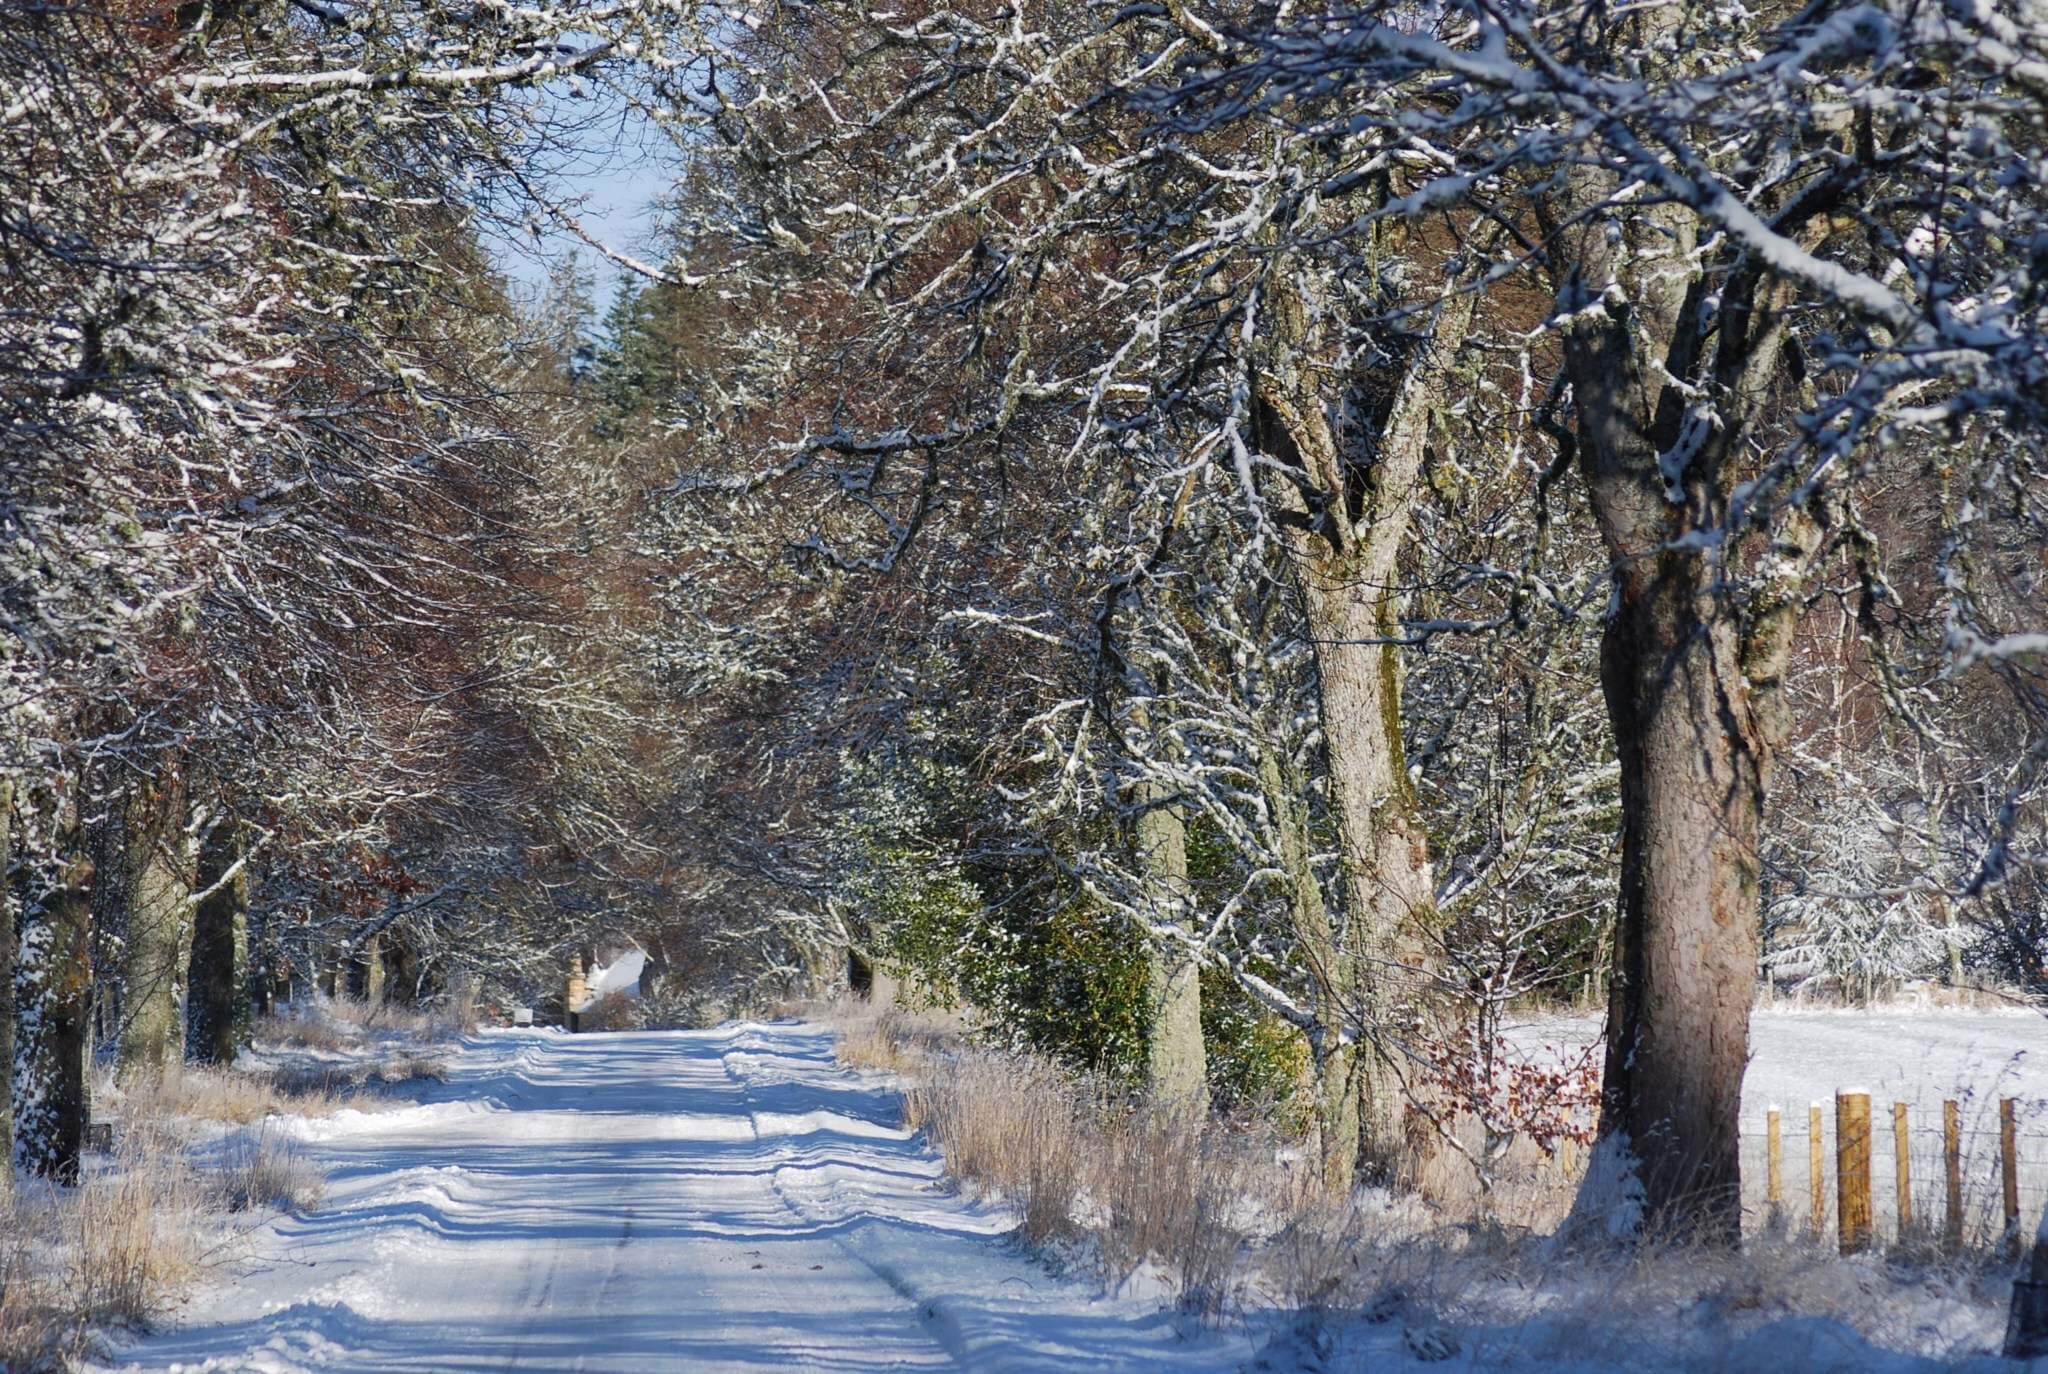 Logie Steading drive in the snow